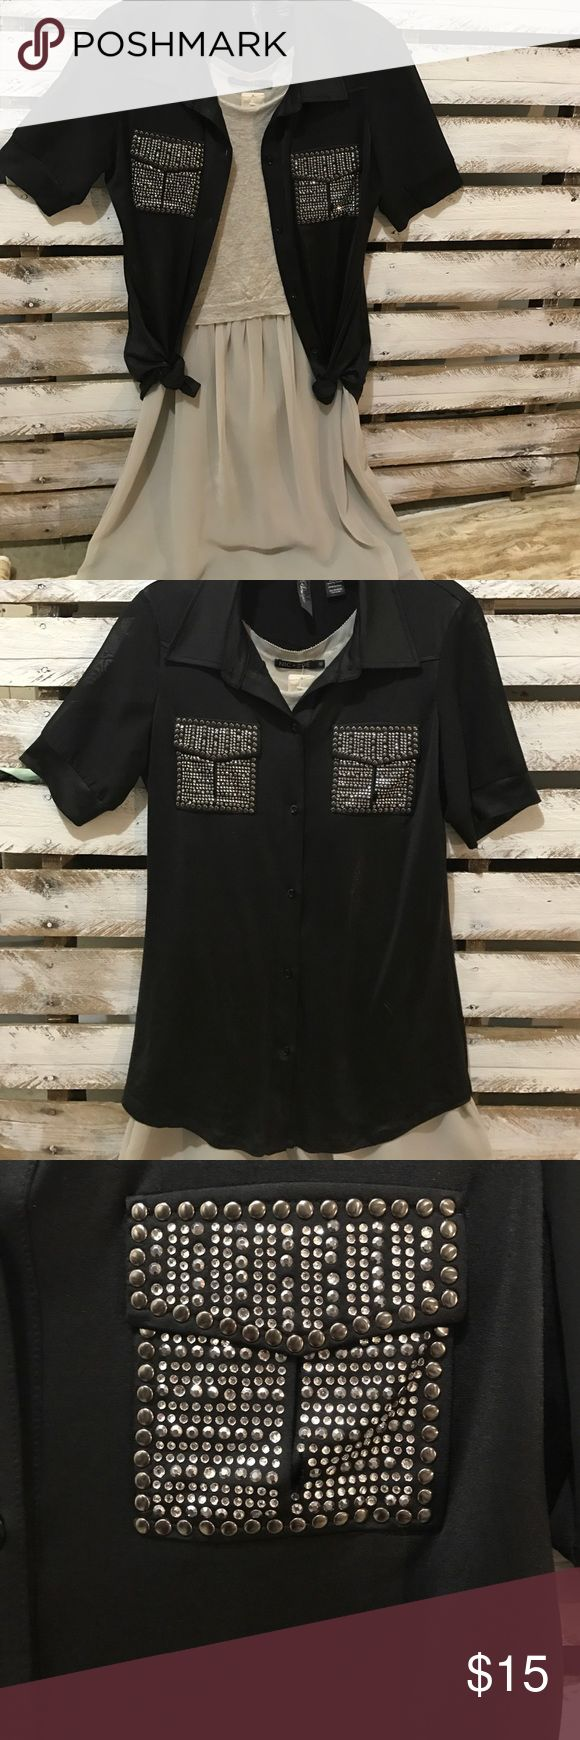 """BKE Boutique Button Down Metallic Tee SMALL 👚 Black metallic button down with chiffon sleeves and embellished pockets on chest.  Left pocket is missing approximately 4 rhinestones. Silky and stretchy material.  Can wear open as a cardigan and tie up the bottoms as pictured it wear as a classy Top buttoned down.  Cute over a flowy dress for an extra """"wow"""" factor!  Spice things up with this incredible shirt! BKE Tops Button Down Shirts"""